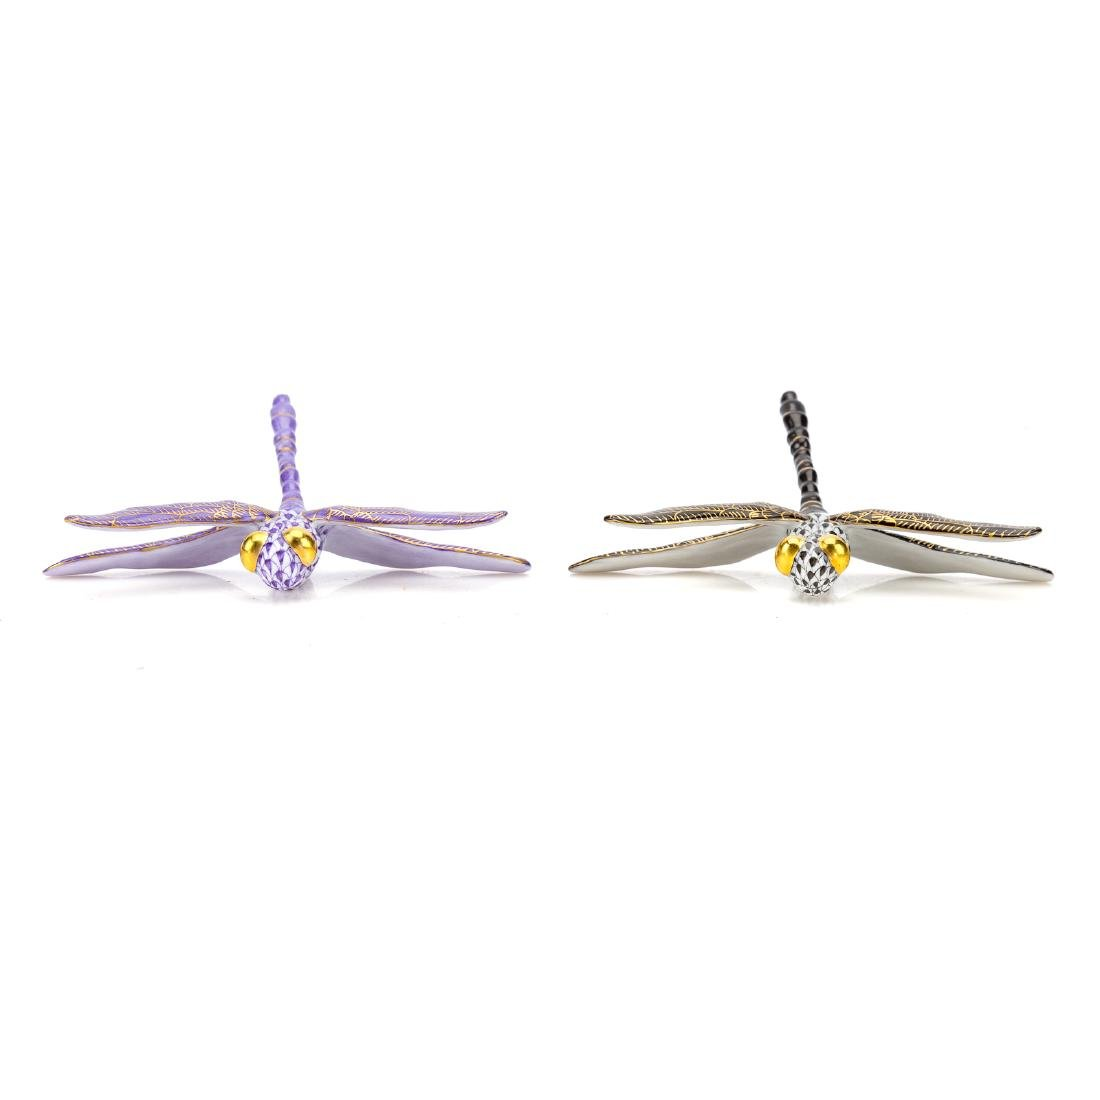 Two Herend porcelain dragonflies - 3